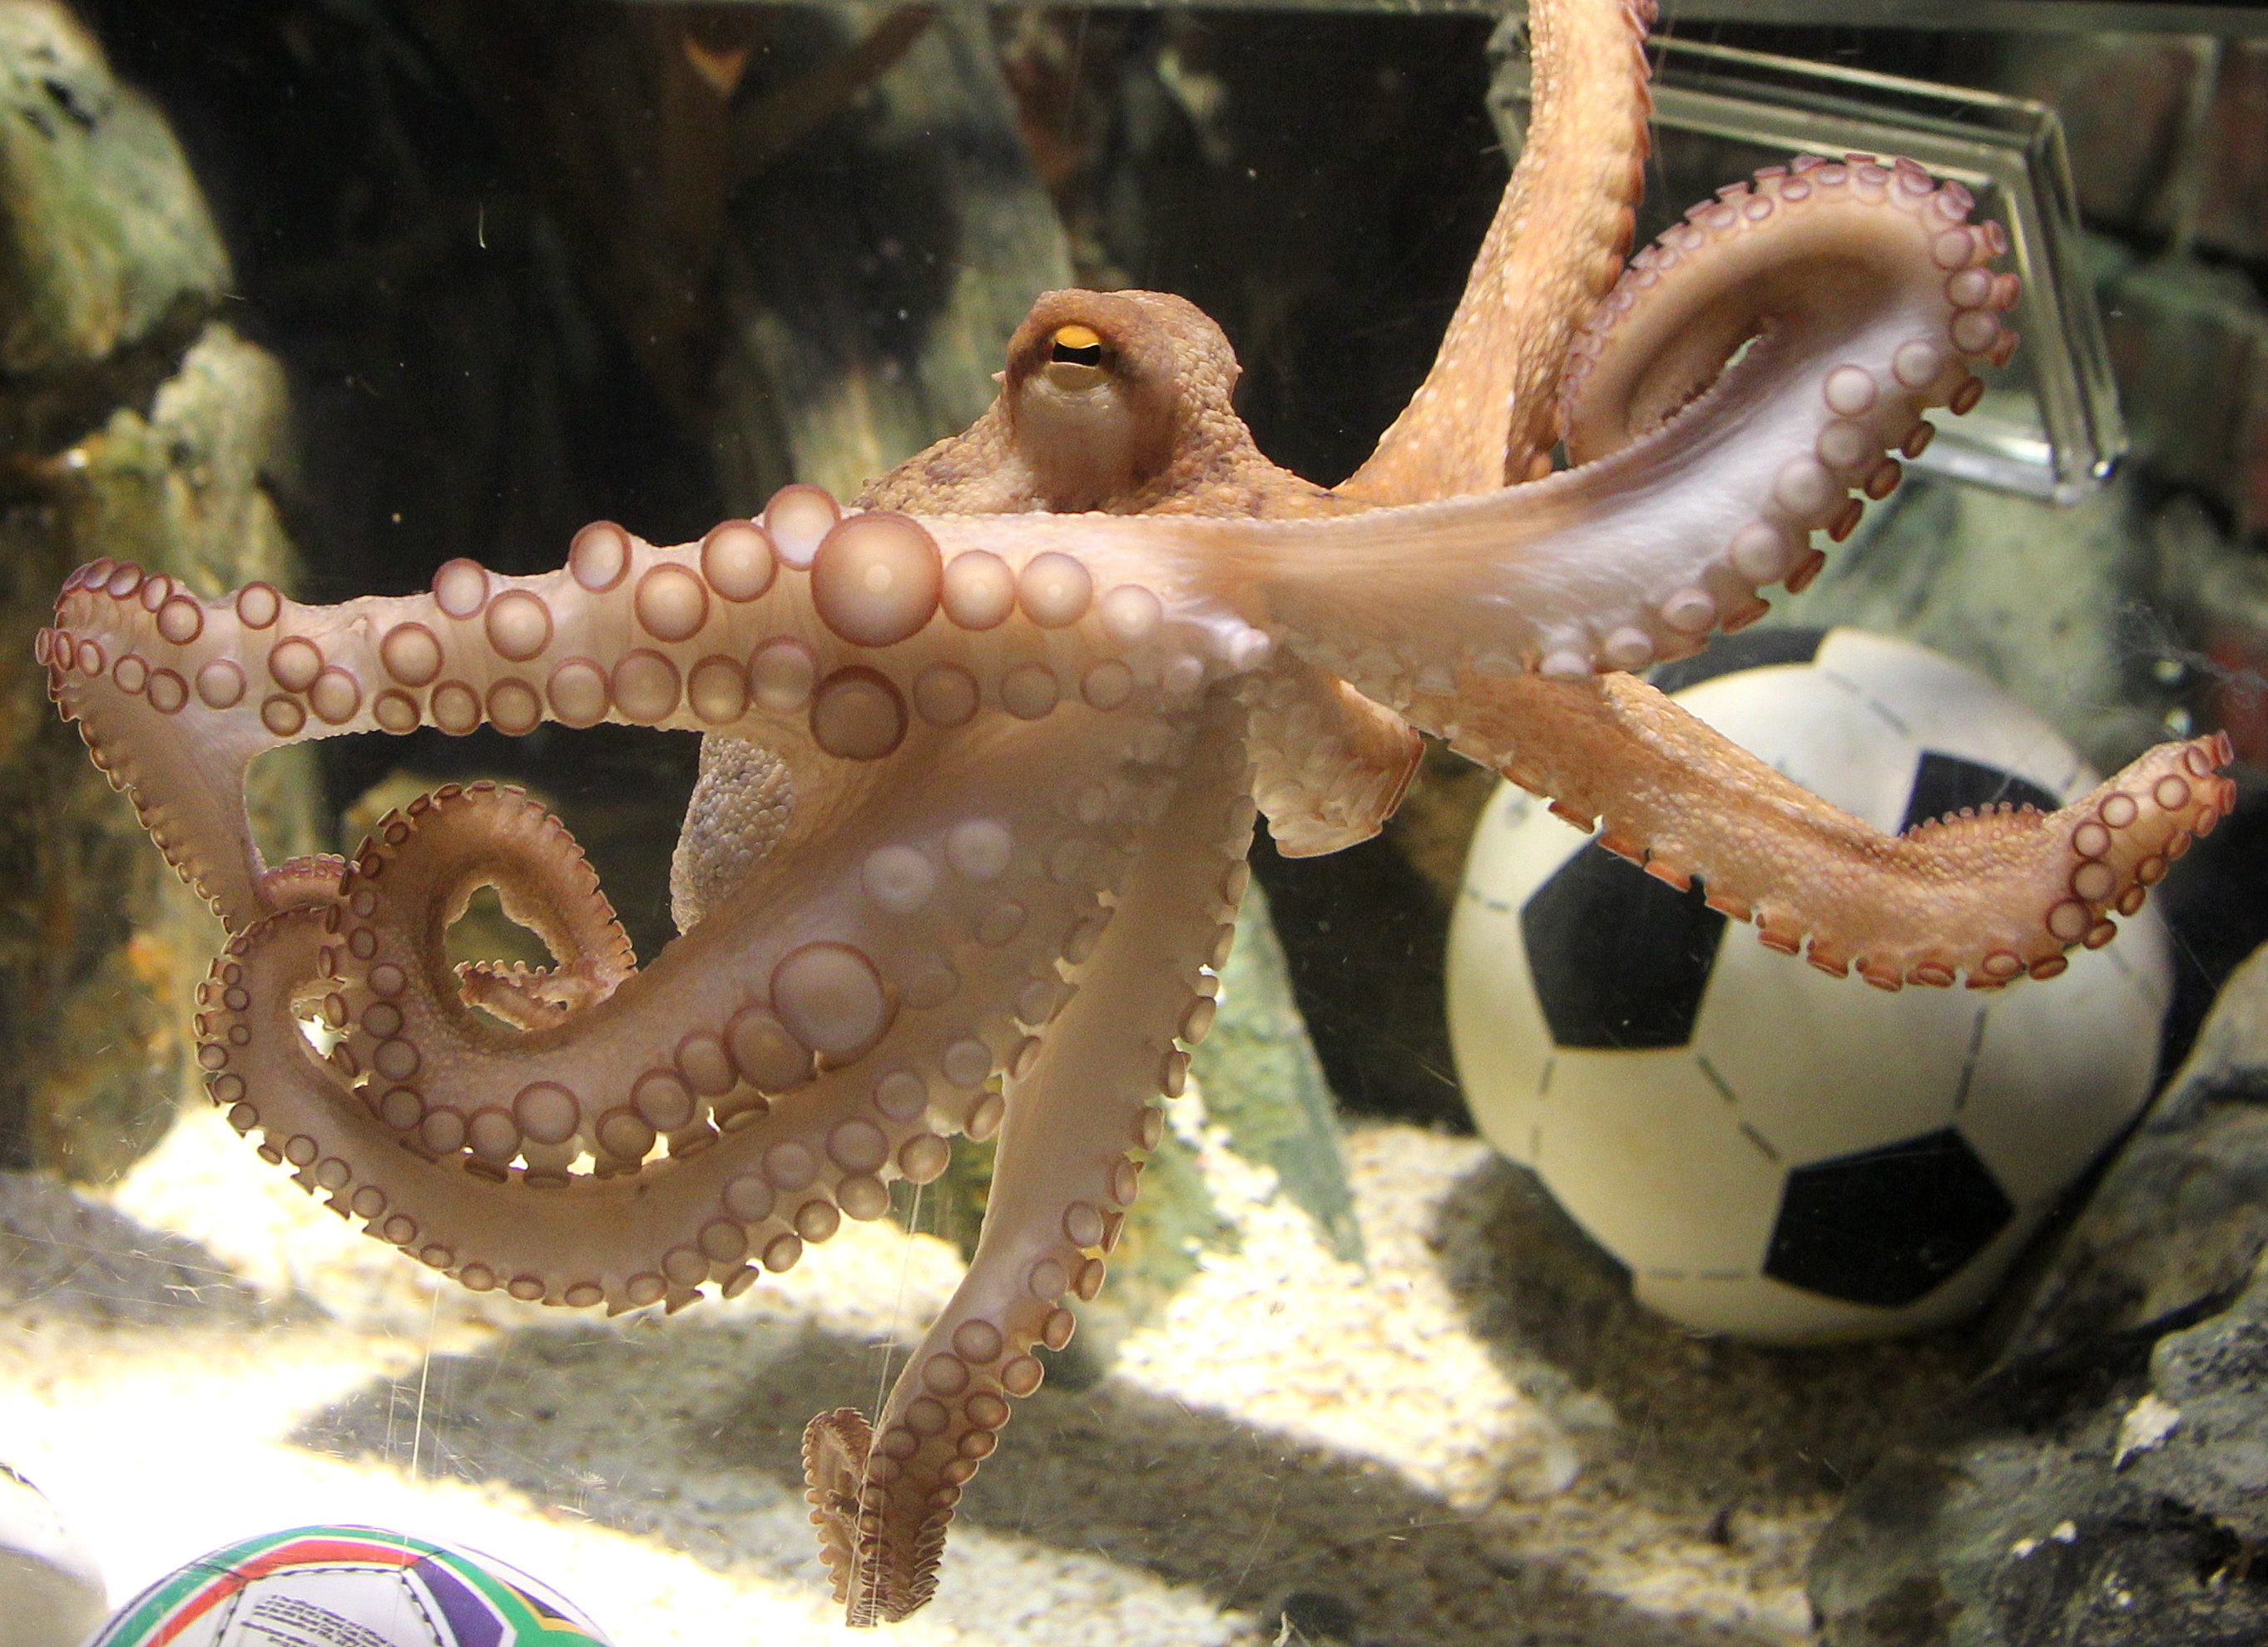 Japan's 'psychic' octopus killed, 'sent to market'